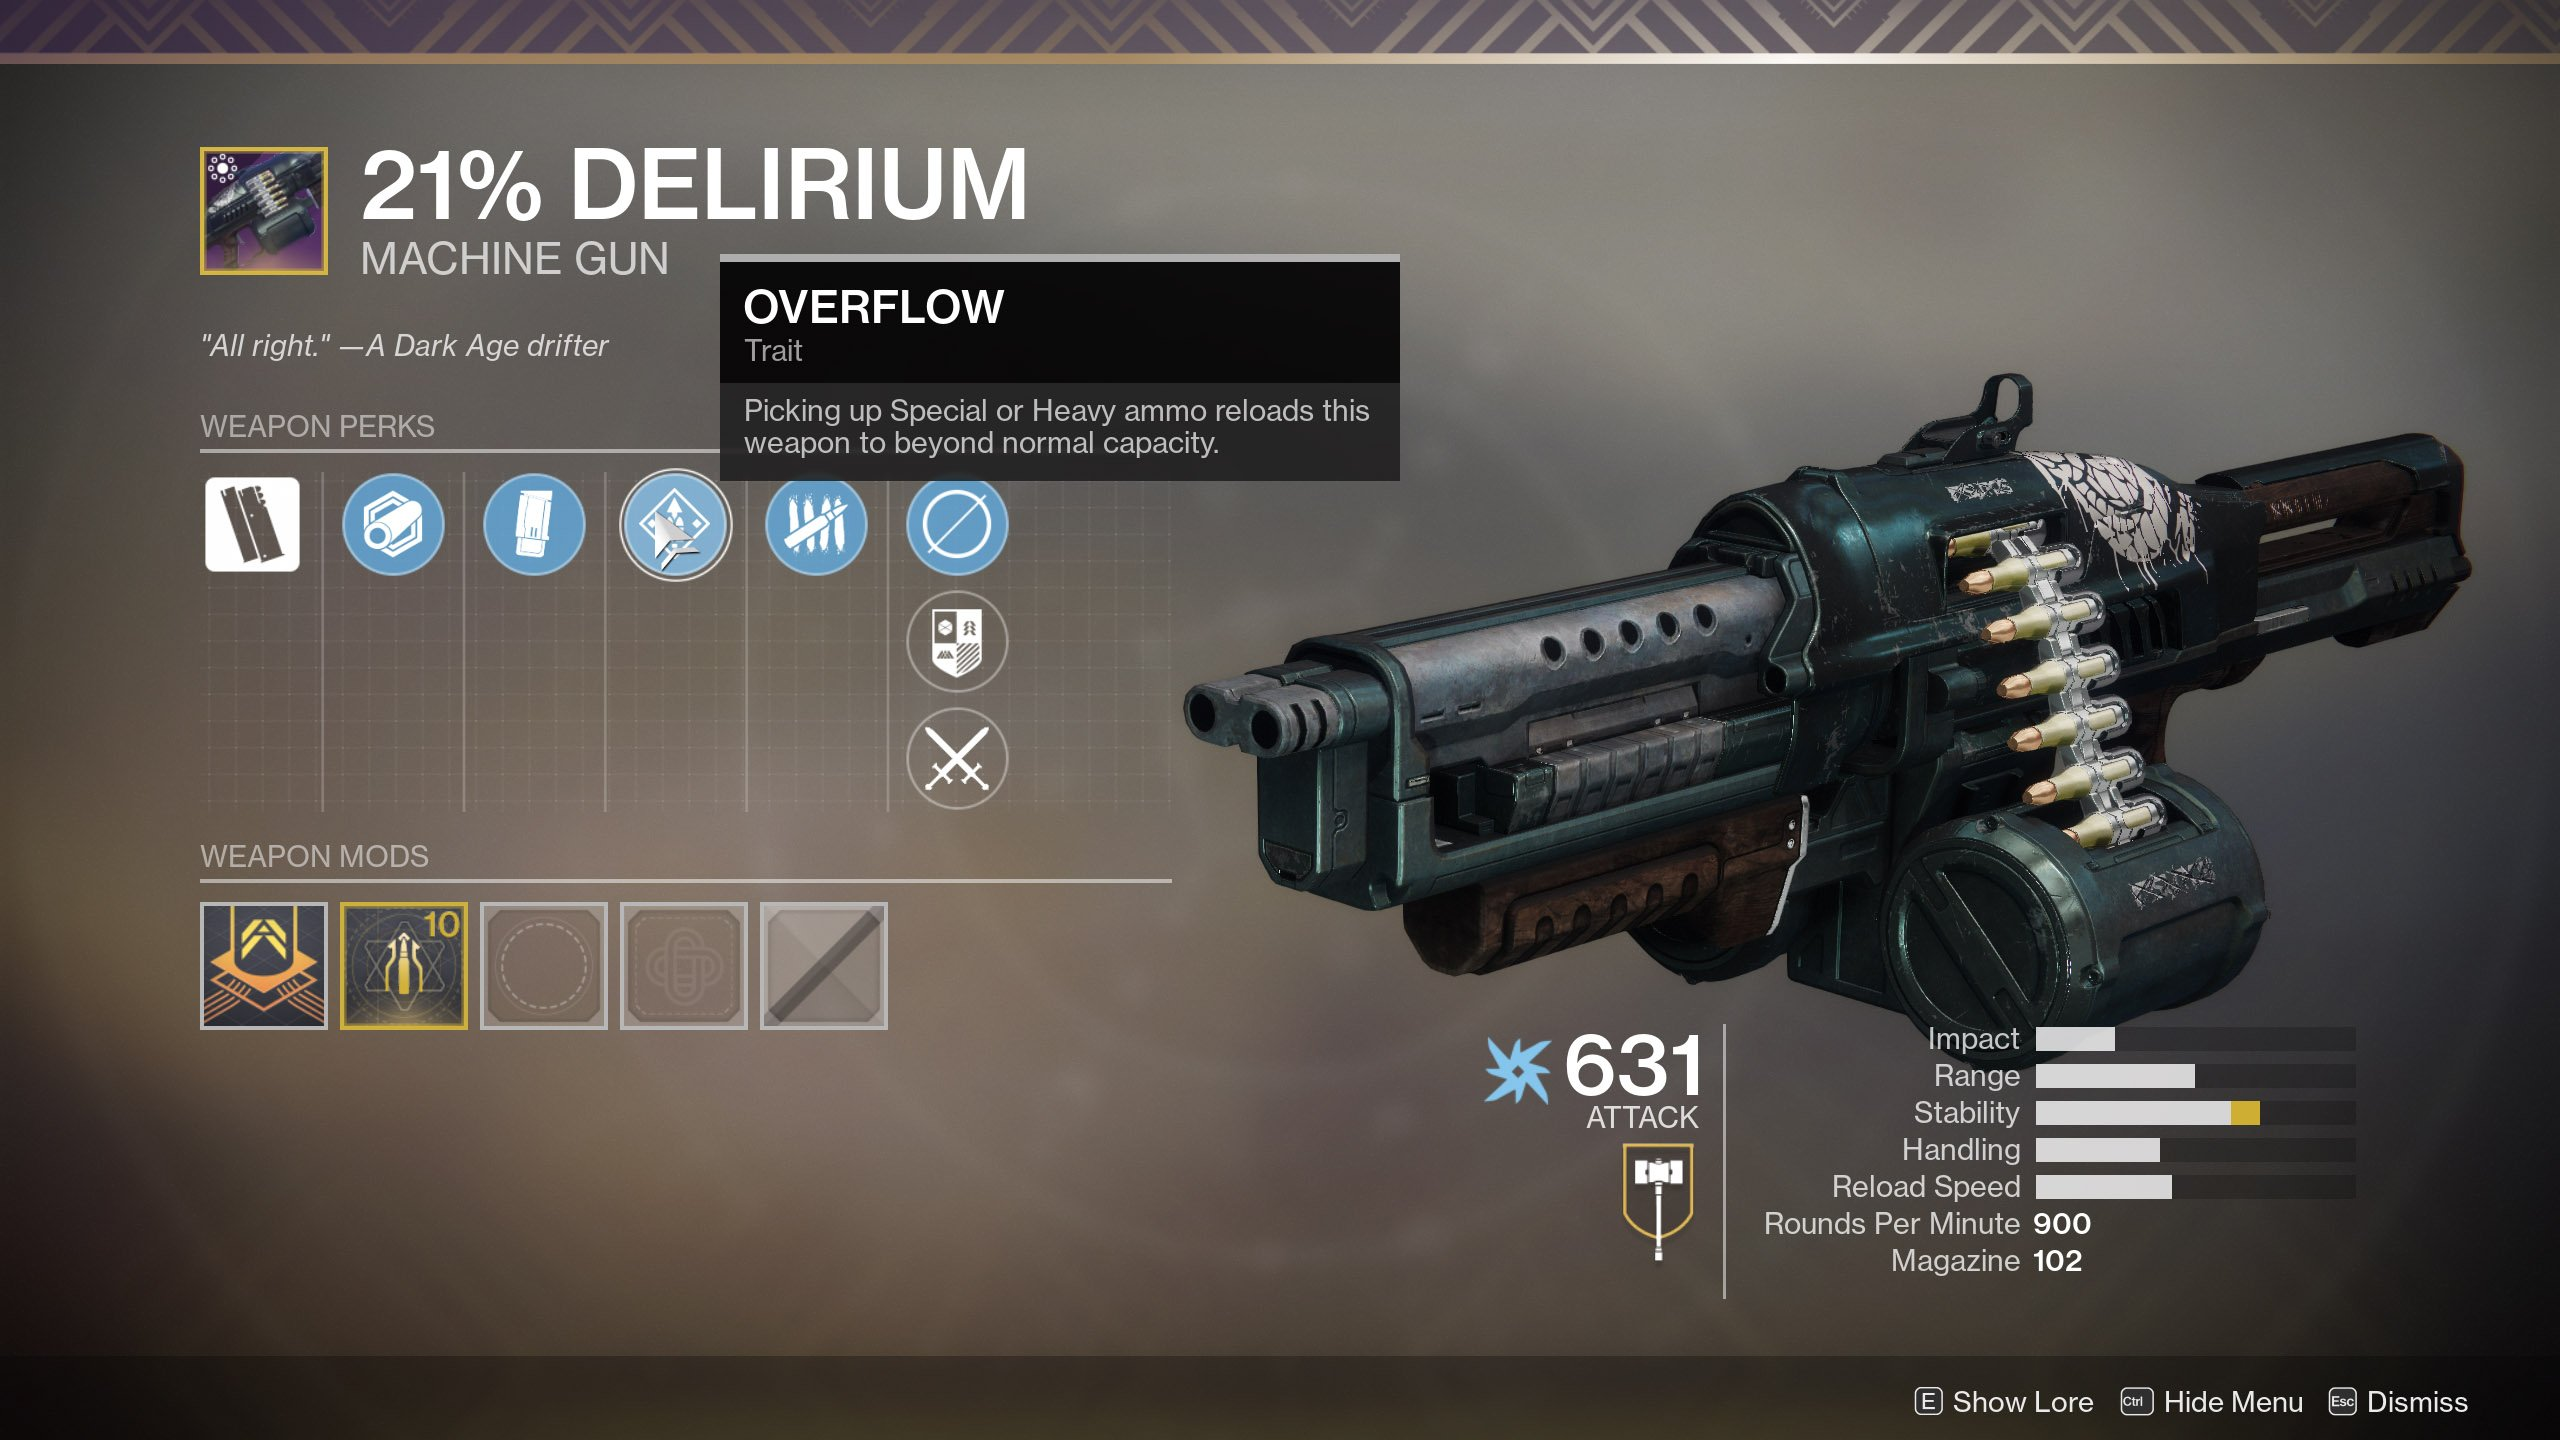 How to Get the 21% Delirium pinnacle weapon in Destiny 2 | Shacknews